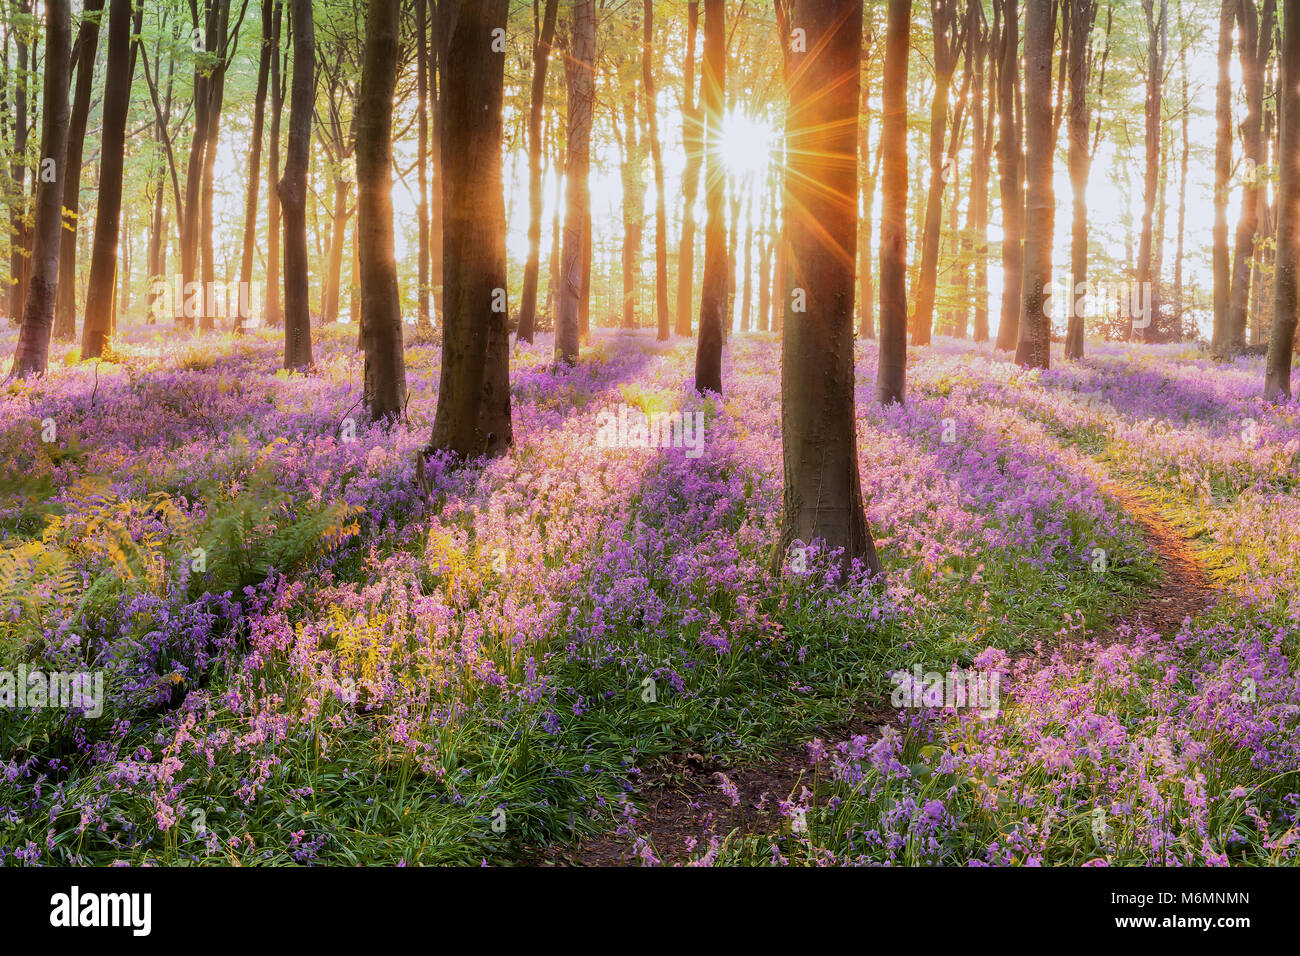 Sunrise In Forest With Bluebells Stock Photos Sunrise In Forest